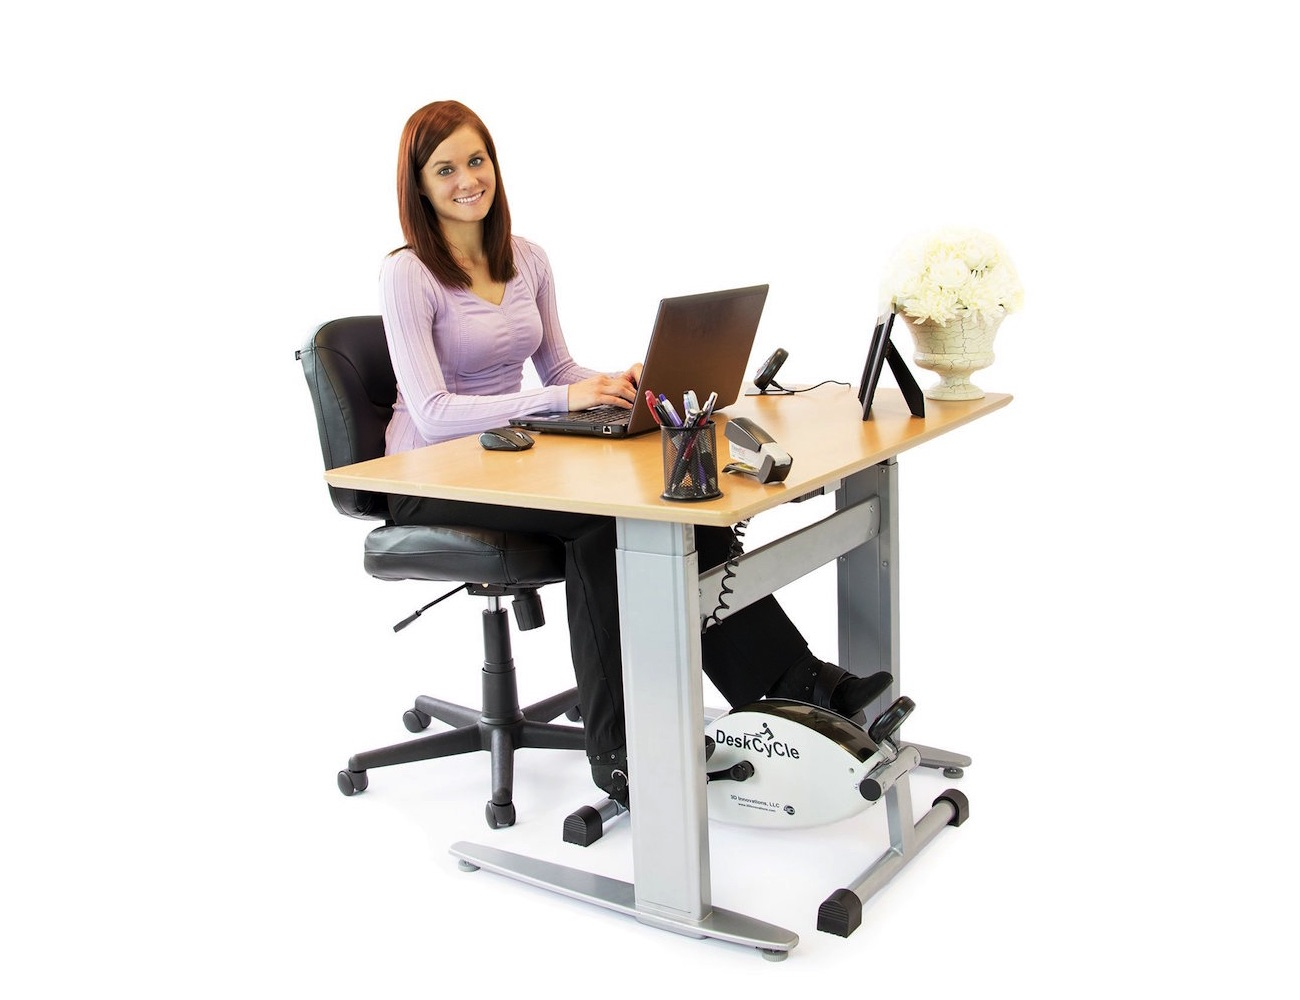 DeskCycle by 3D Innovations